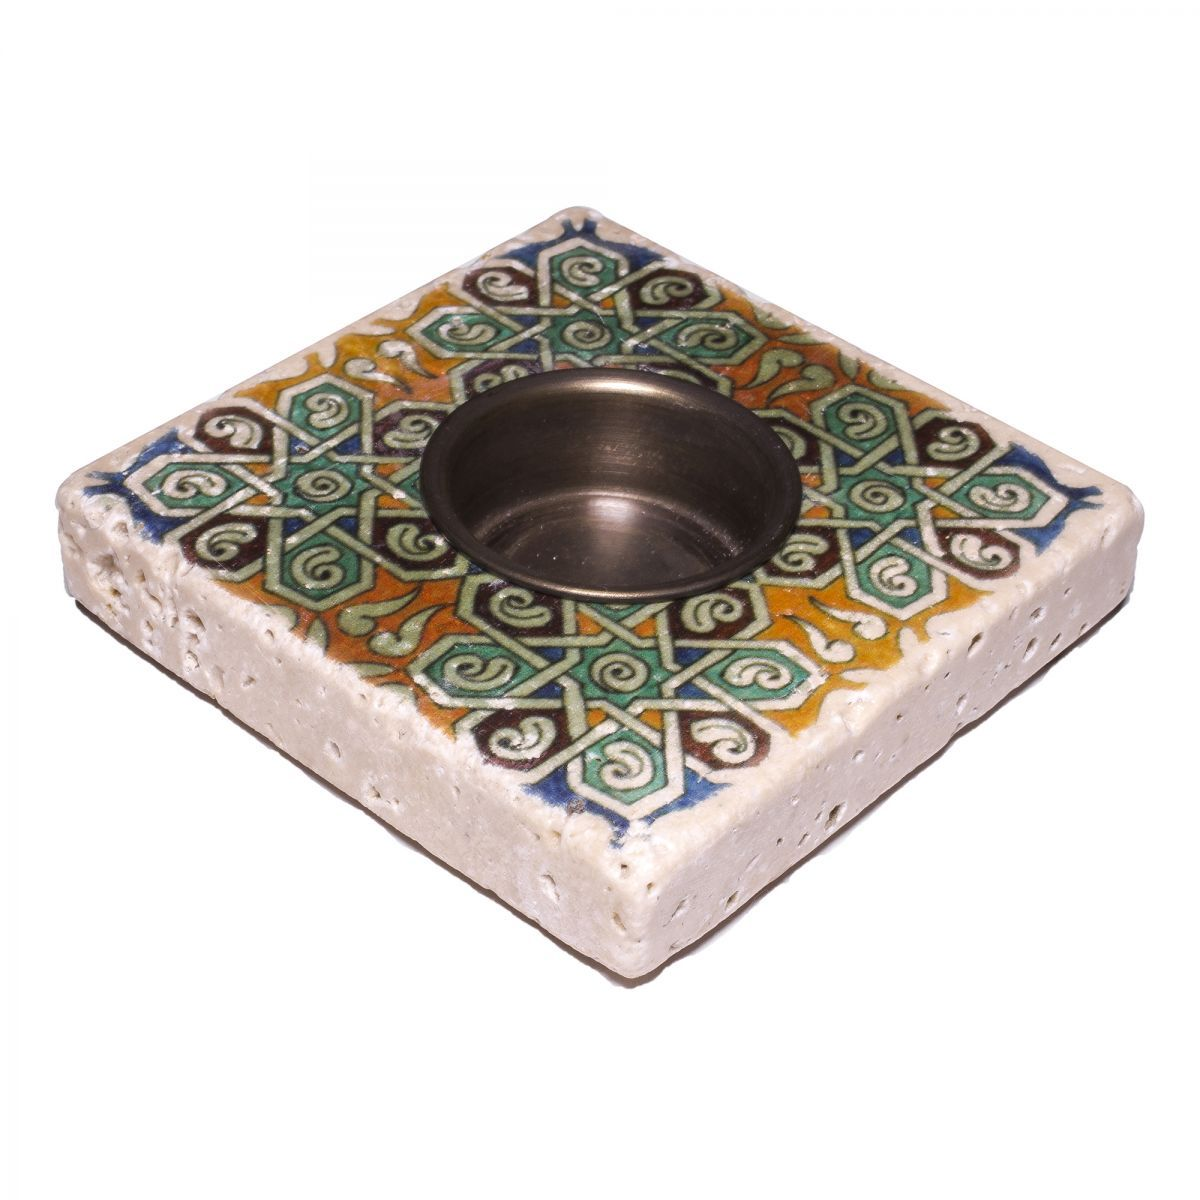 Candle Holder Lodge - Travertine 20A